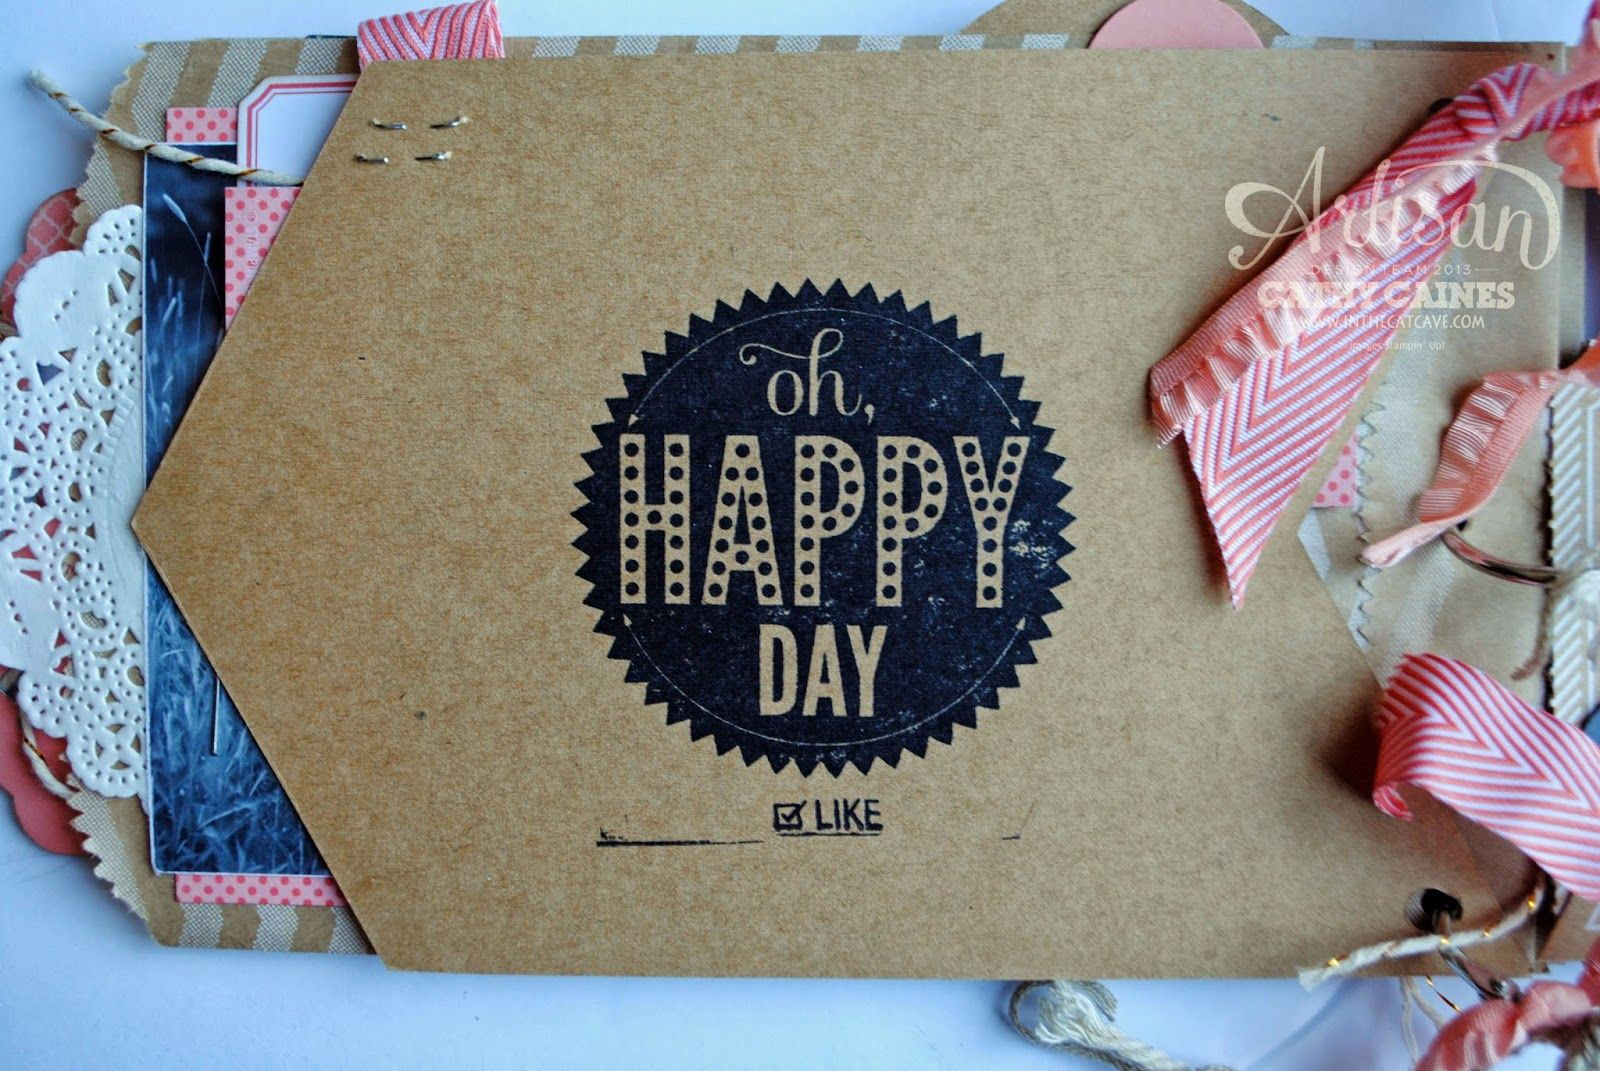 CELEBRATION BANNER MINI ALBUM | AWW by Cathy Caines @Coral Hinz' Up!